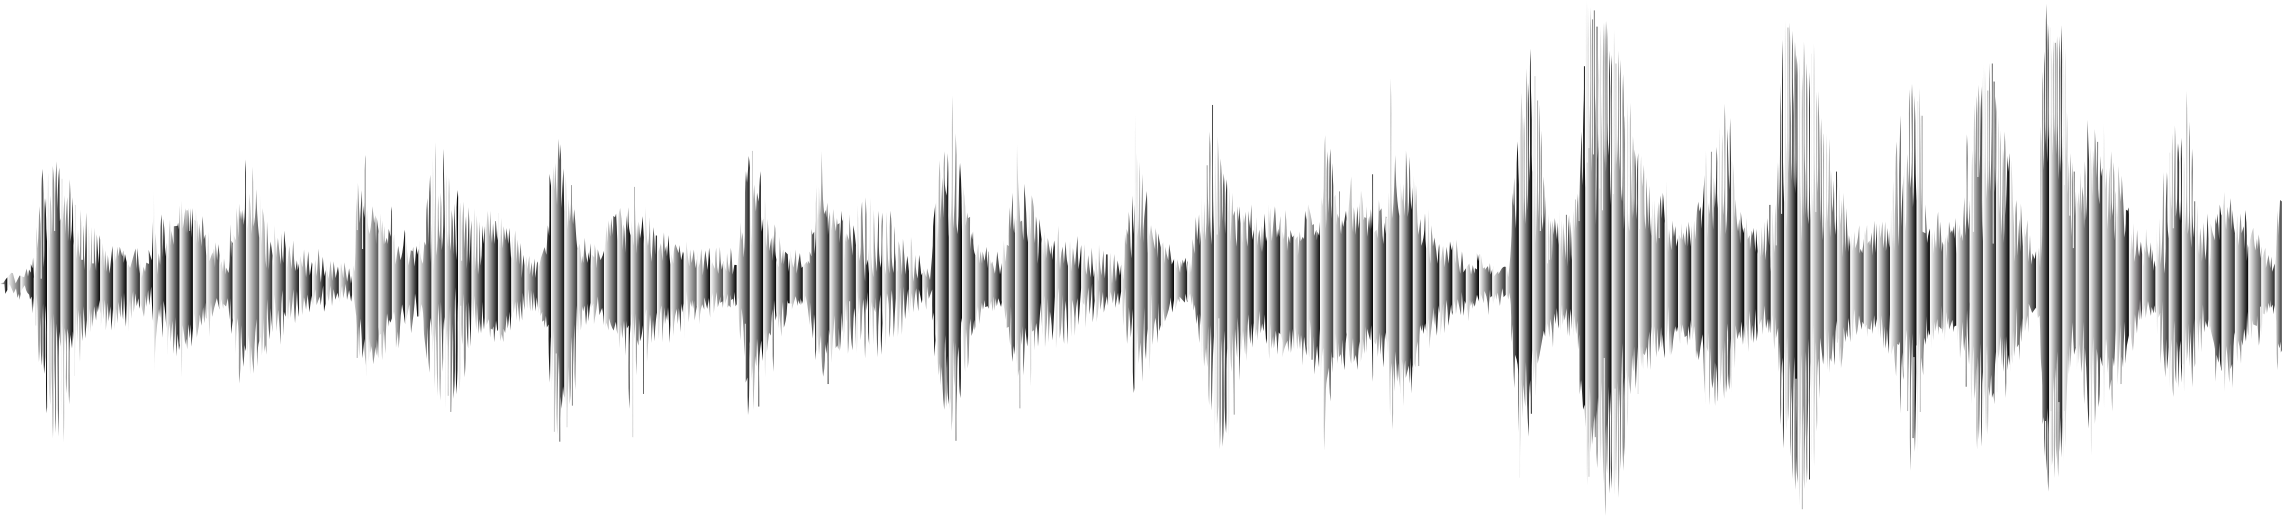 Monochrome Sound Wave by GDJ